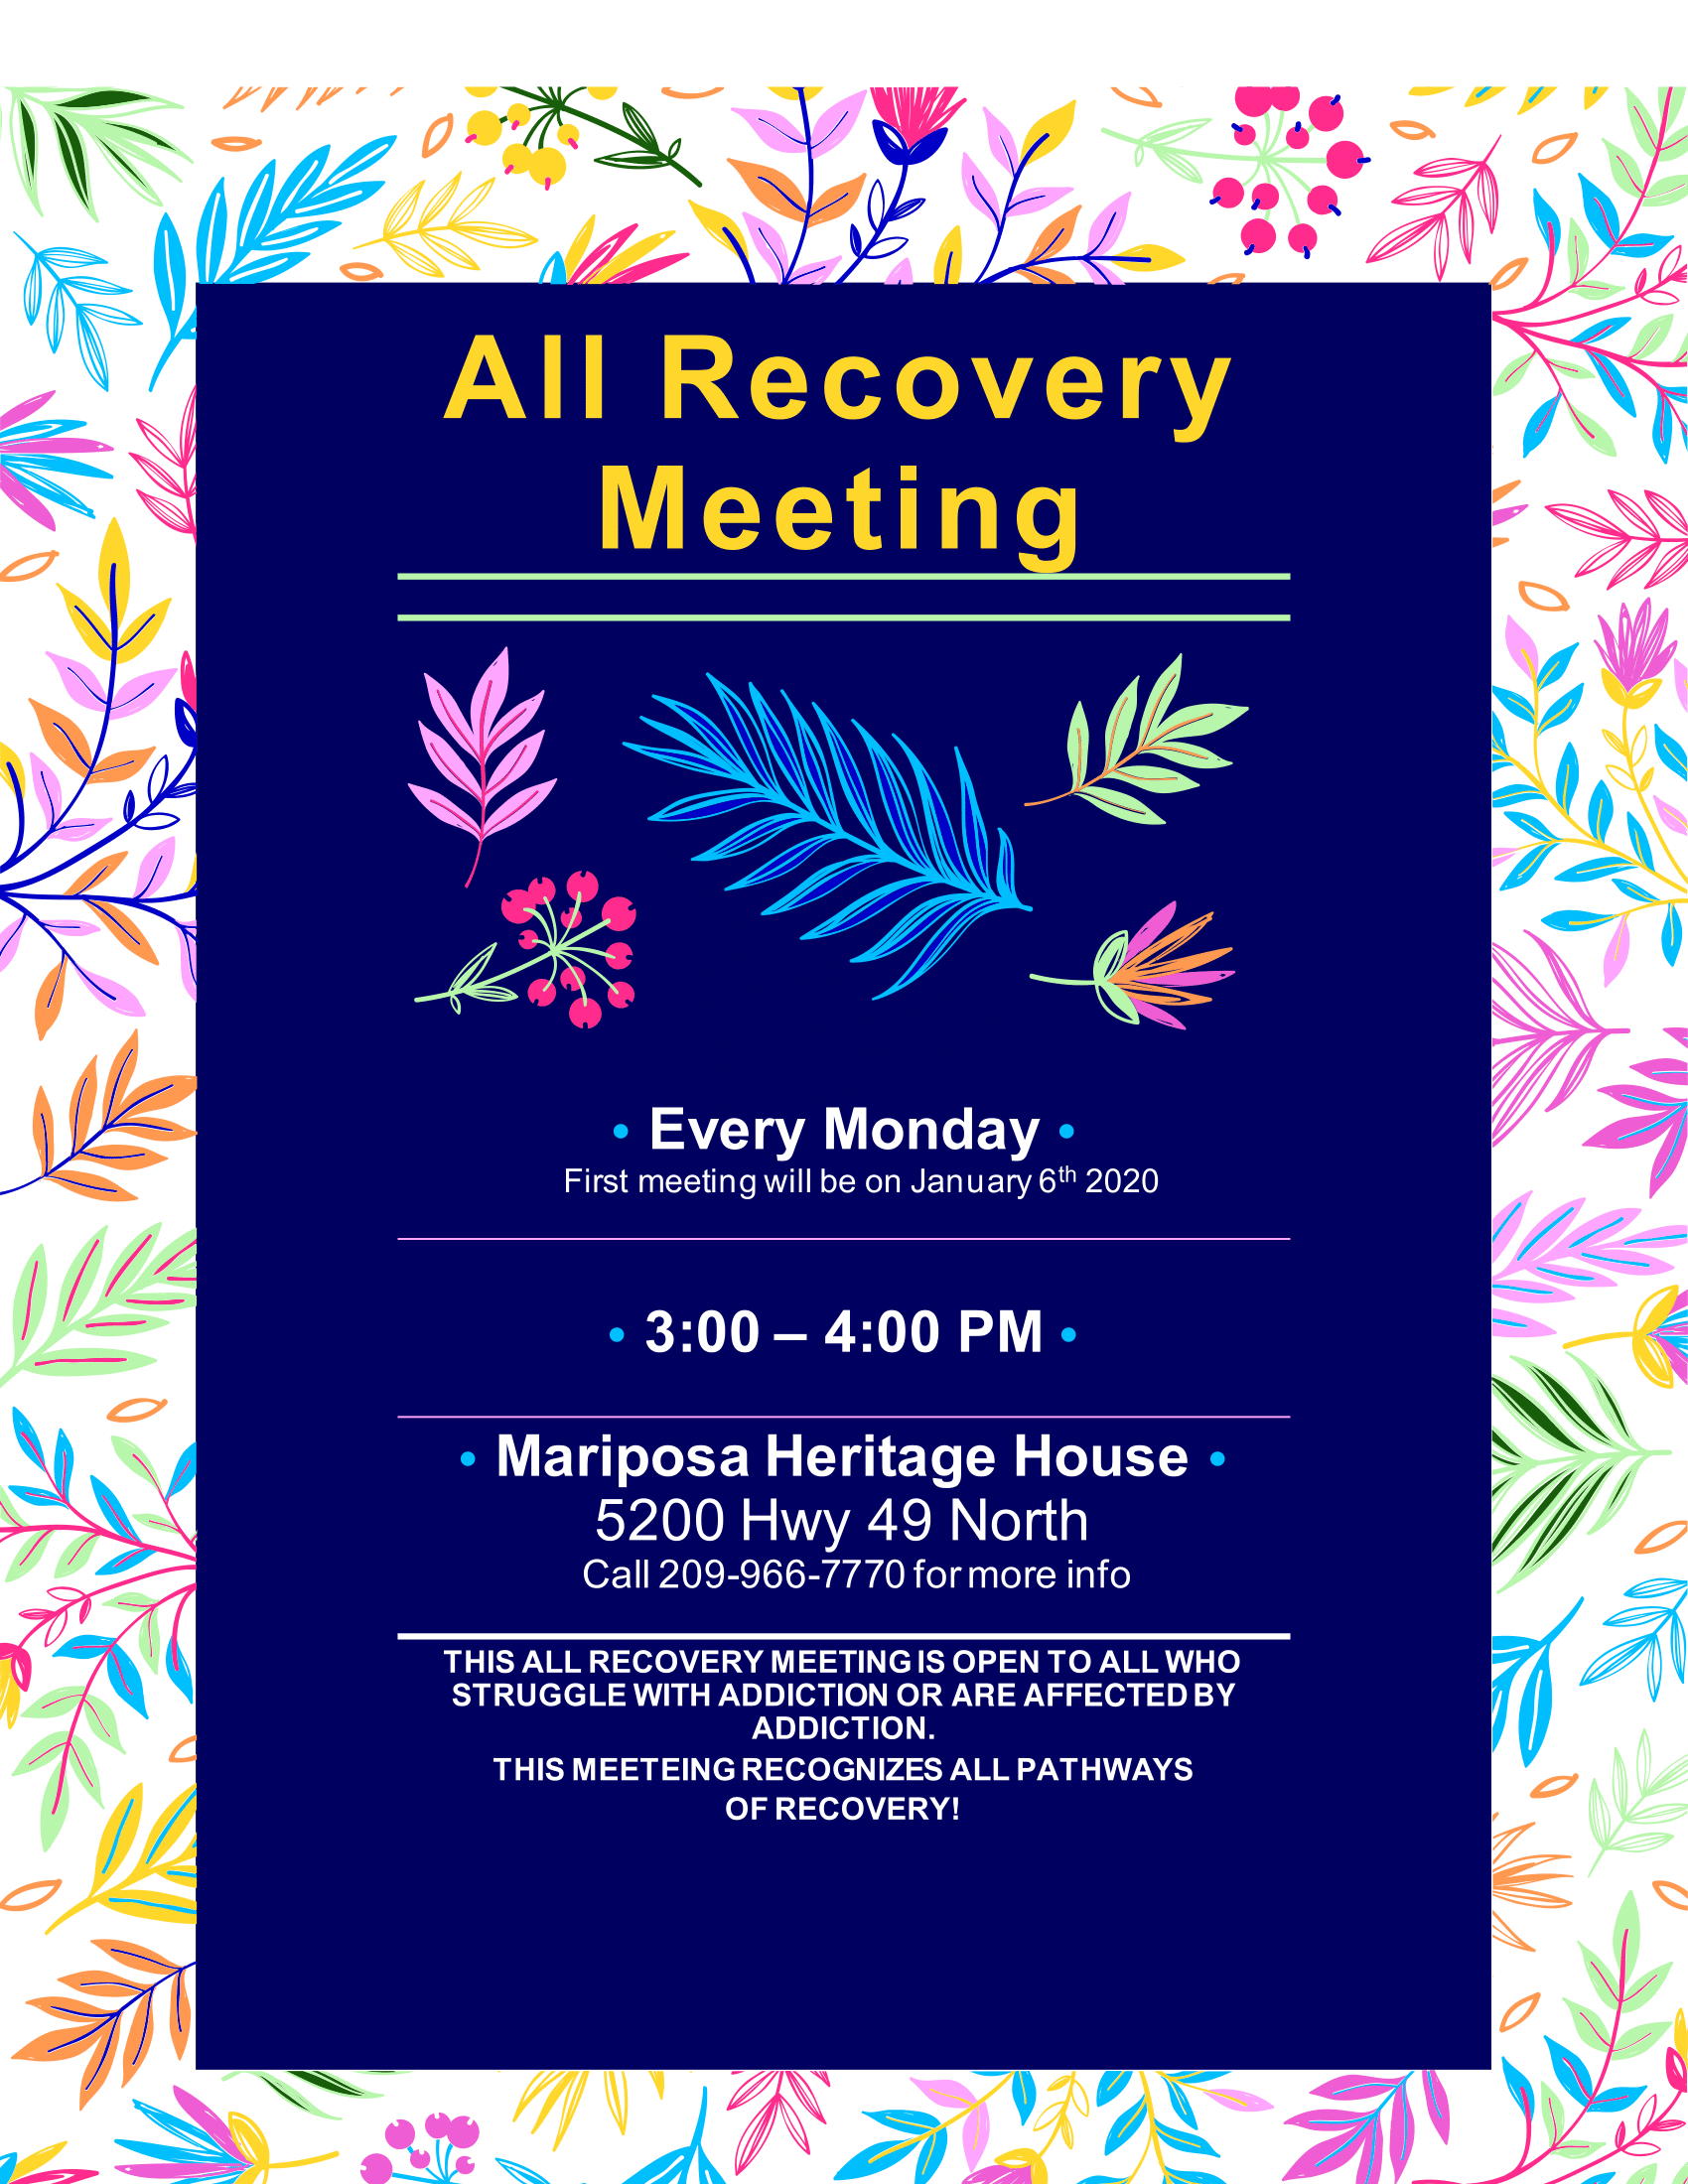 All Recovery Meeting